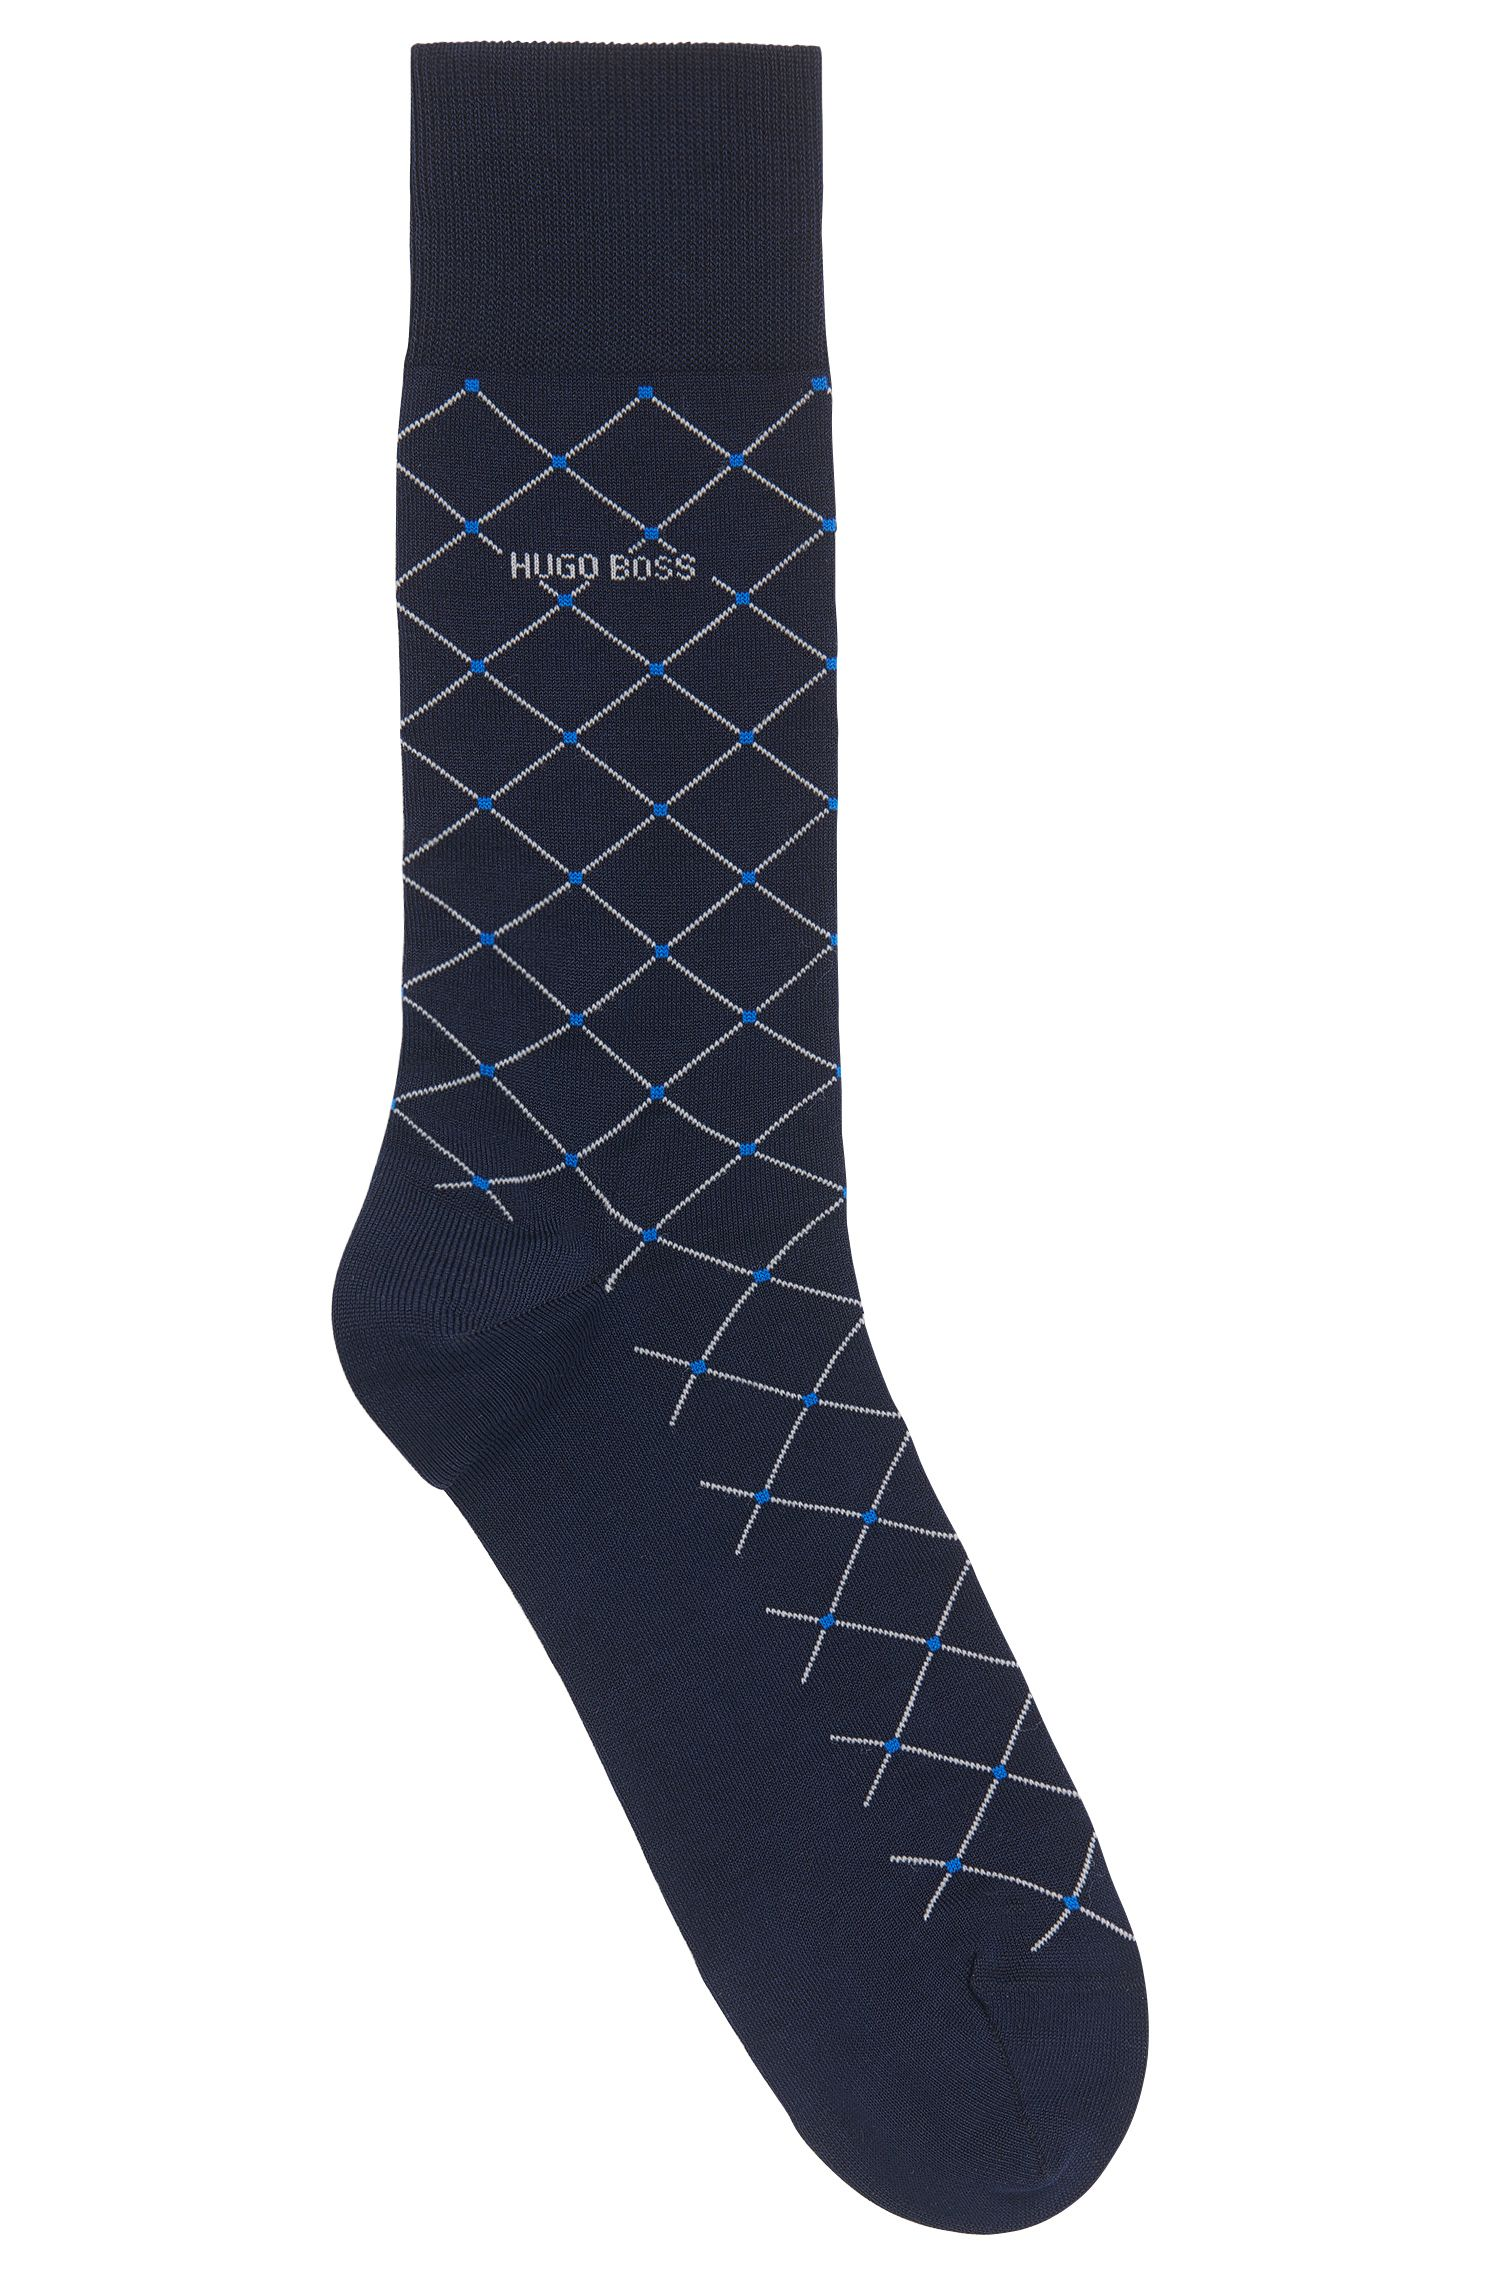 Mercerised cotton-blend socks with diagonal check pattern